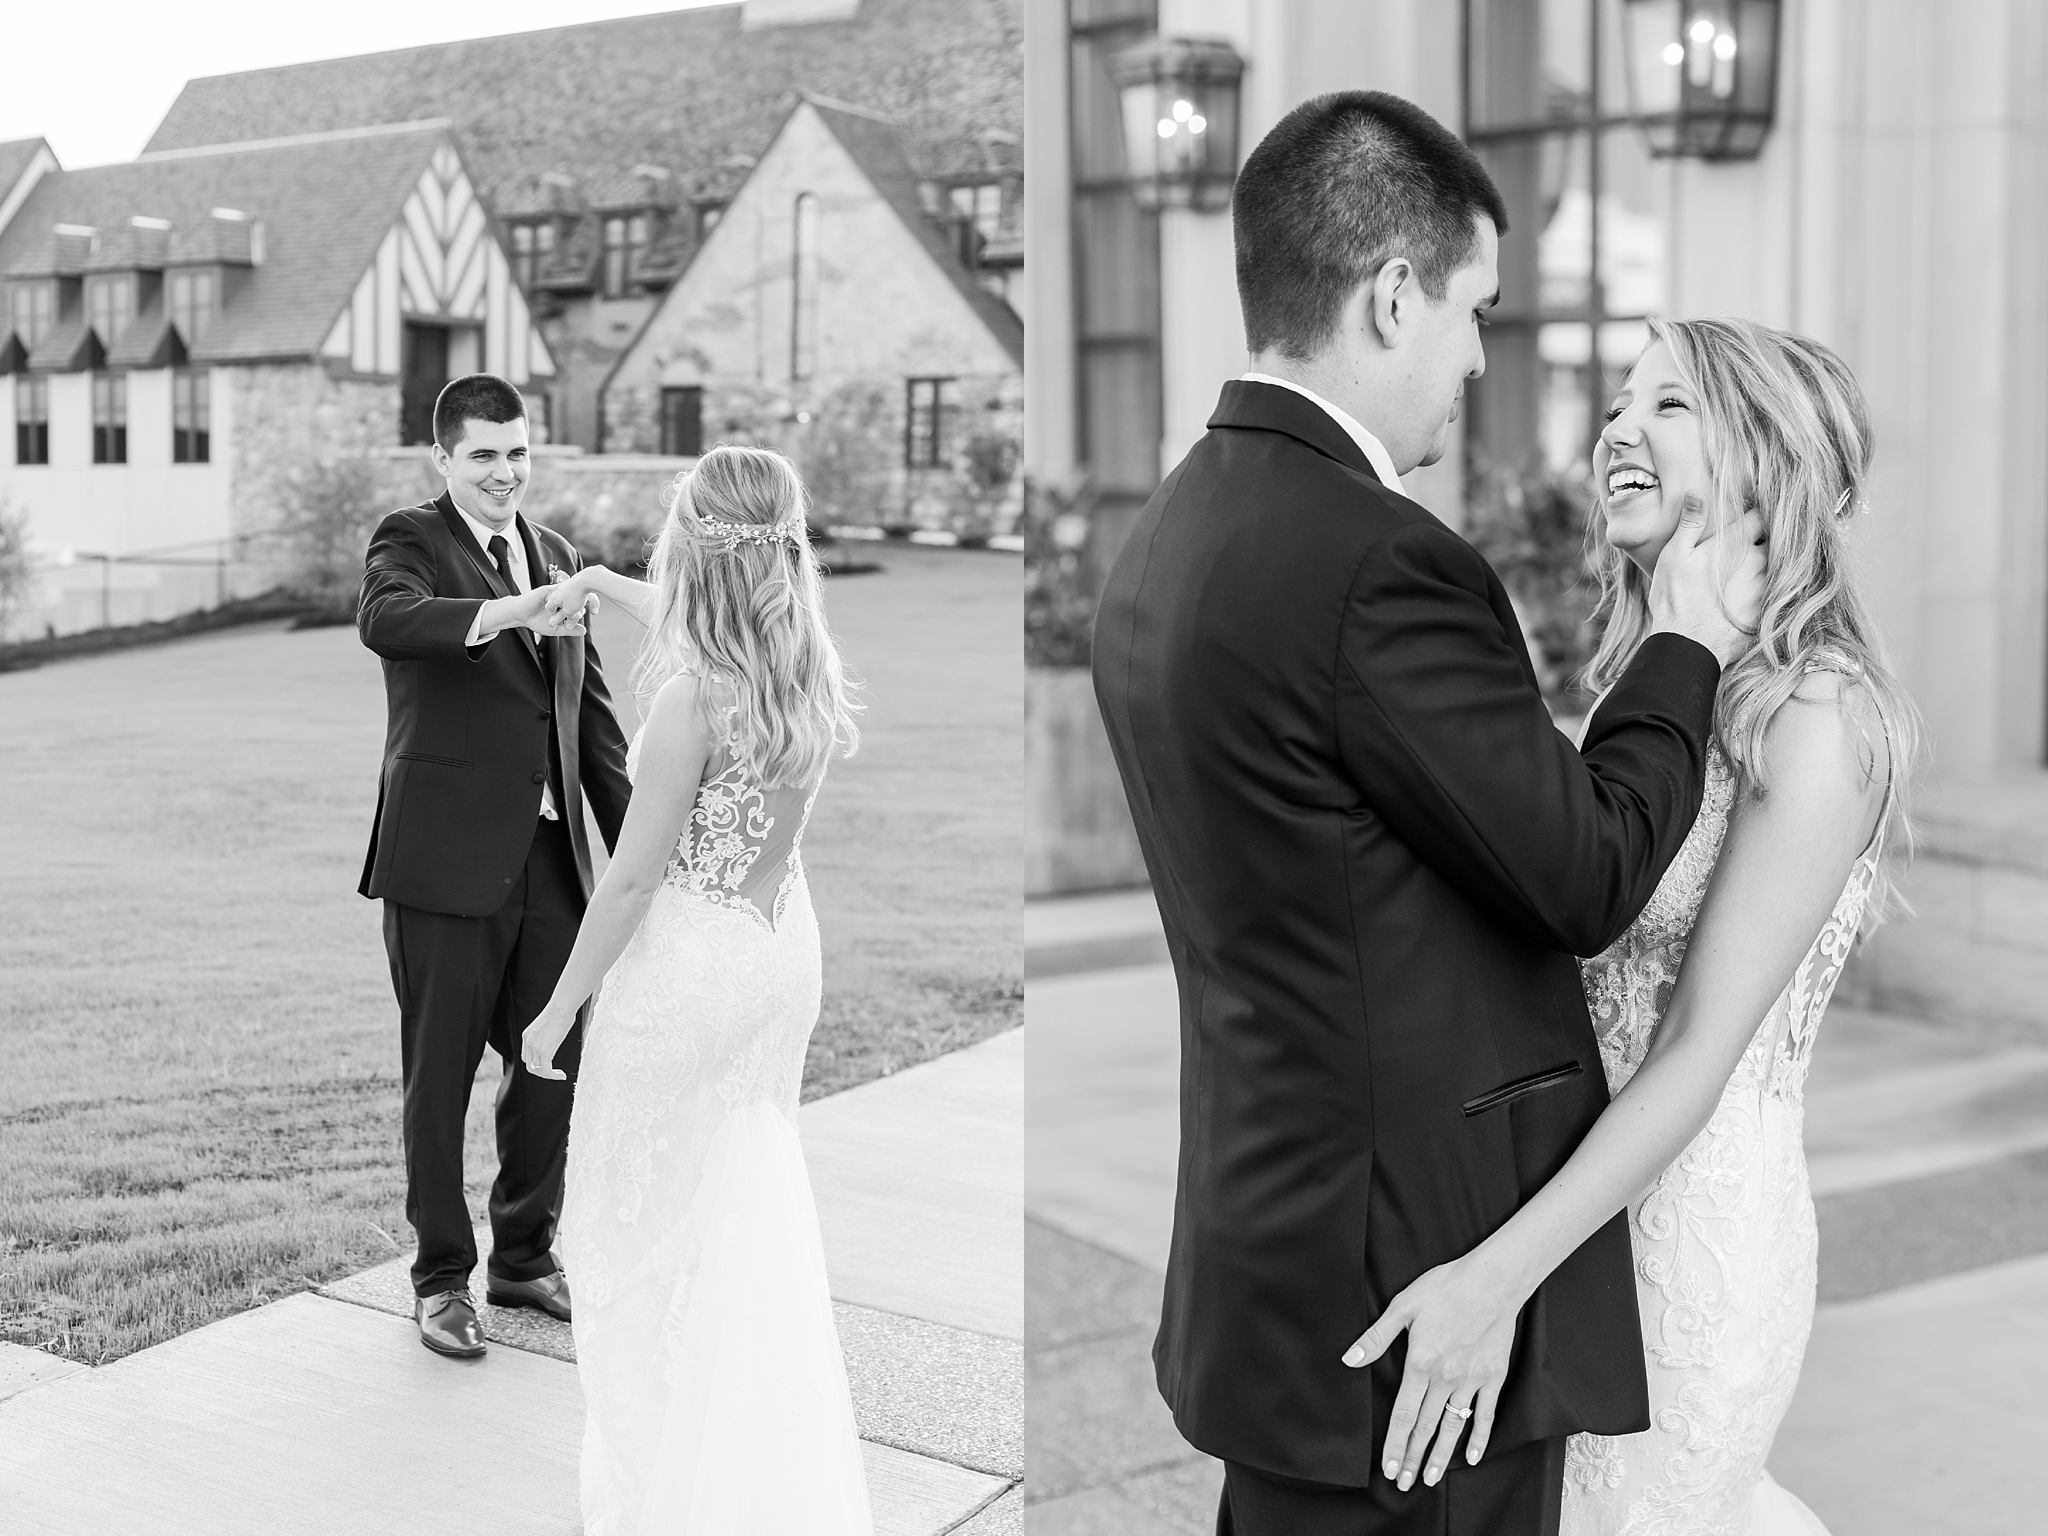 candid-romantic-wedding-photos-at-the-h-hotel-in-midland-michigan-by-courtney-carolyn-photography_0104.jpg